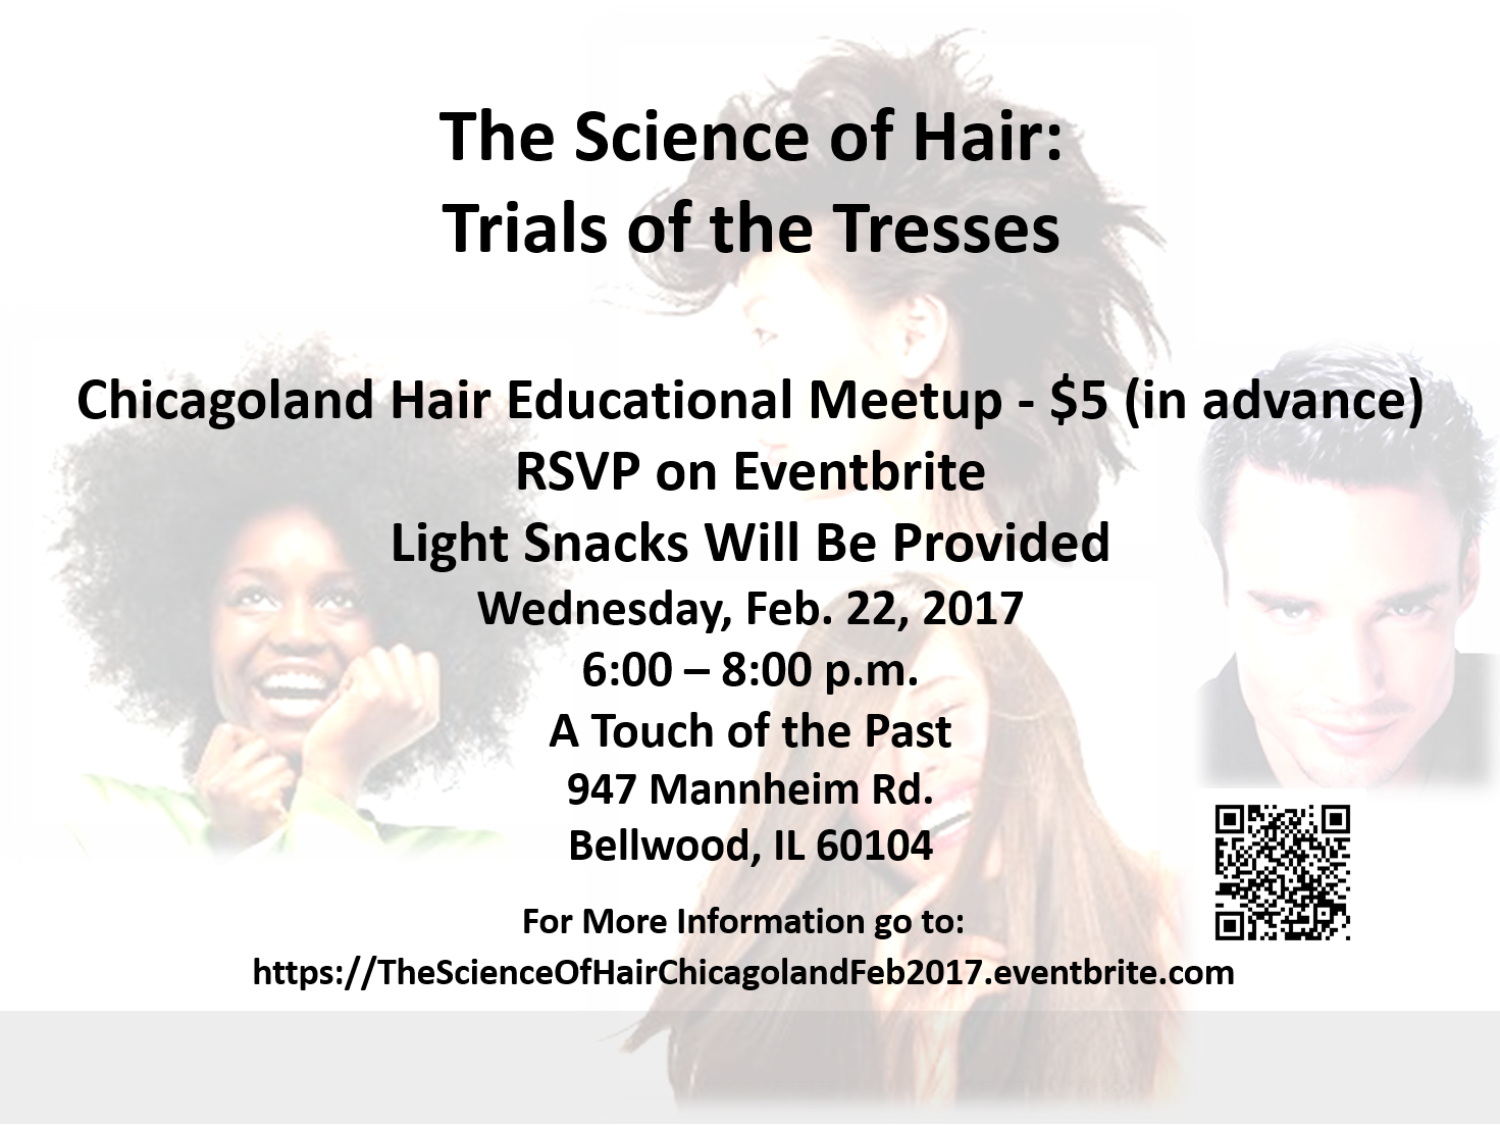 Trials of the Tresses Chicagoland Hair Educational Meetup